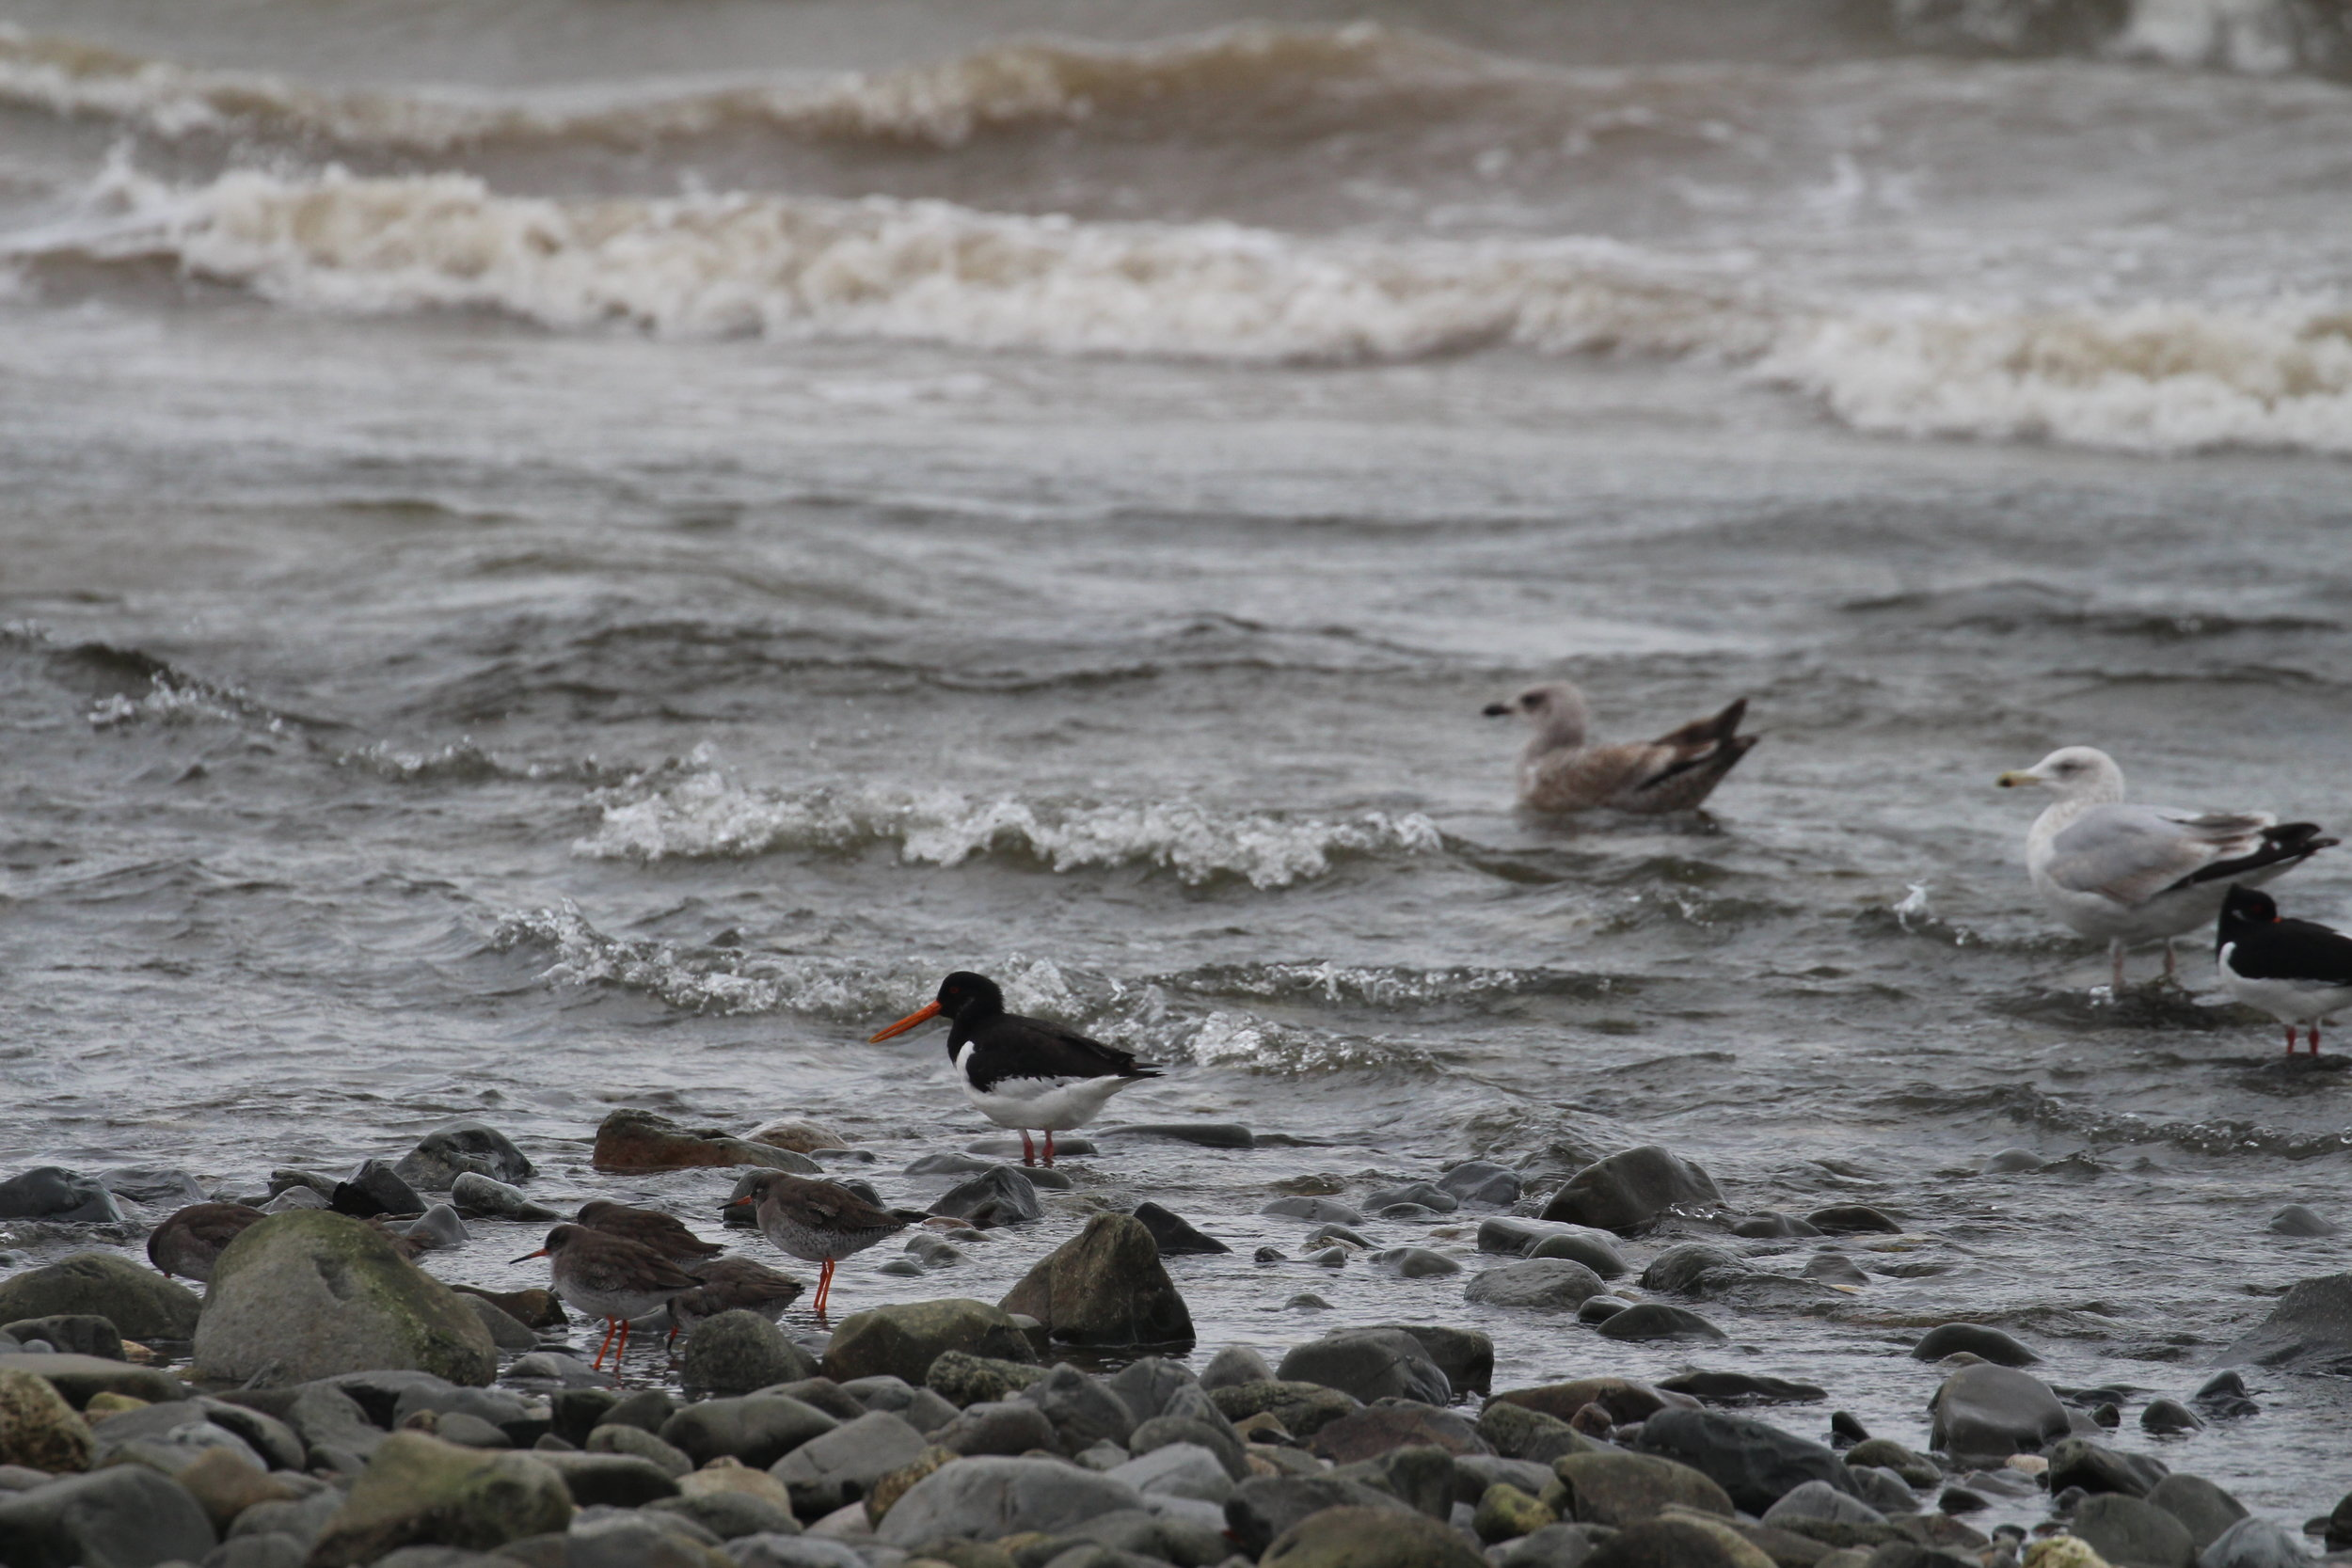 Redshank, Oystercatcher and Herring Gulls